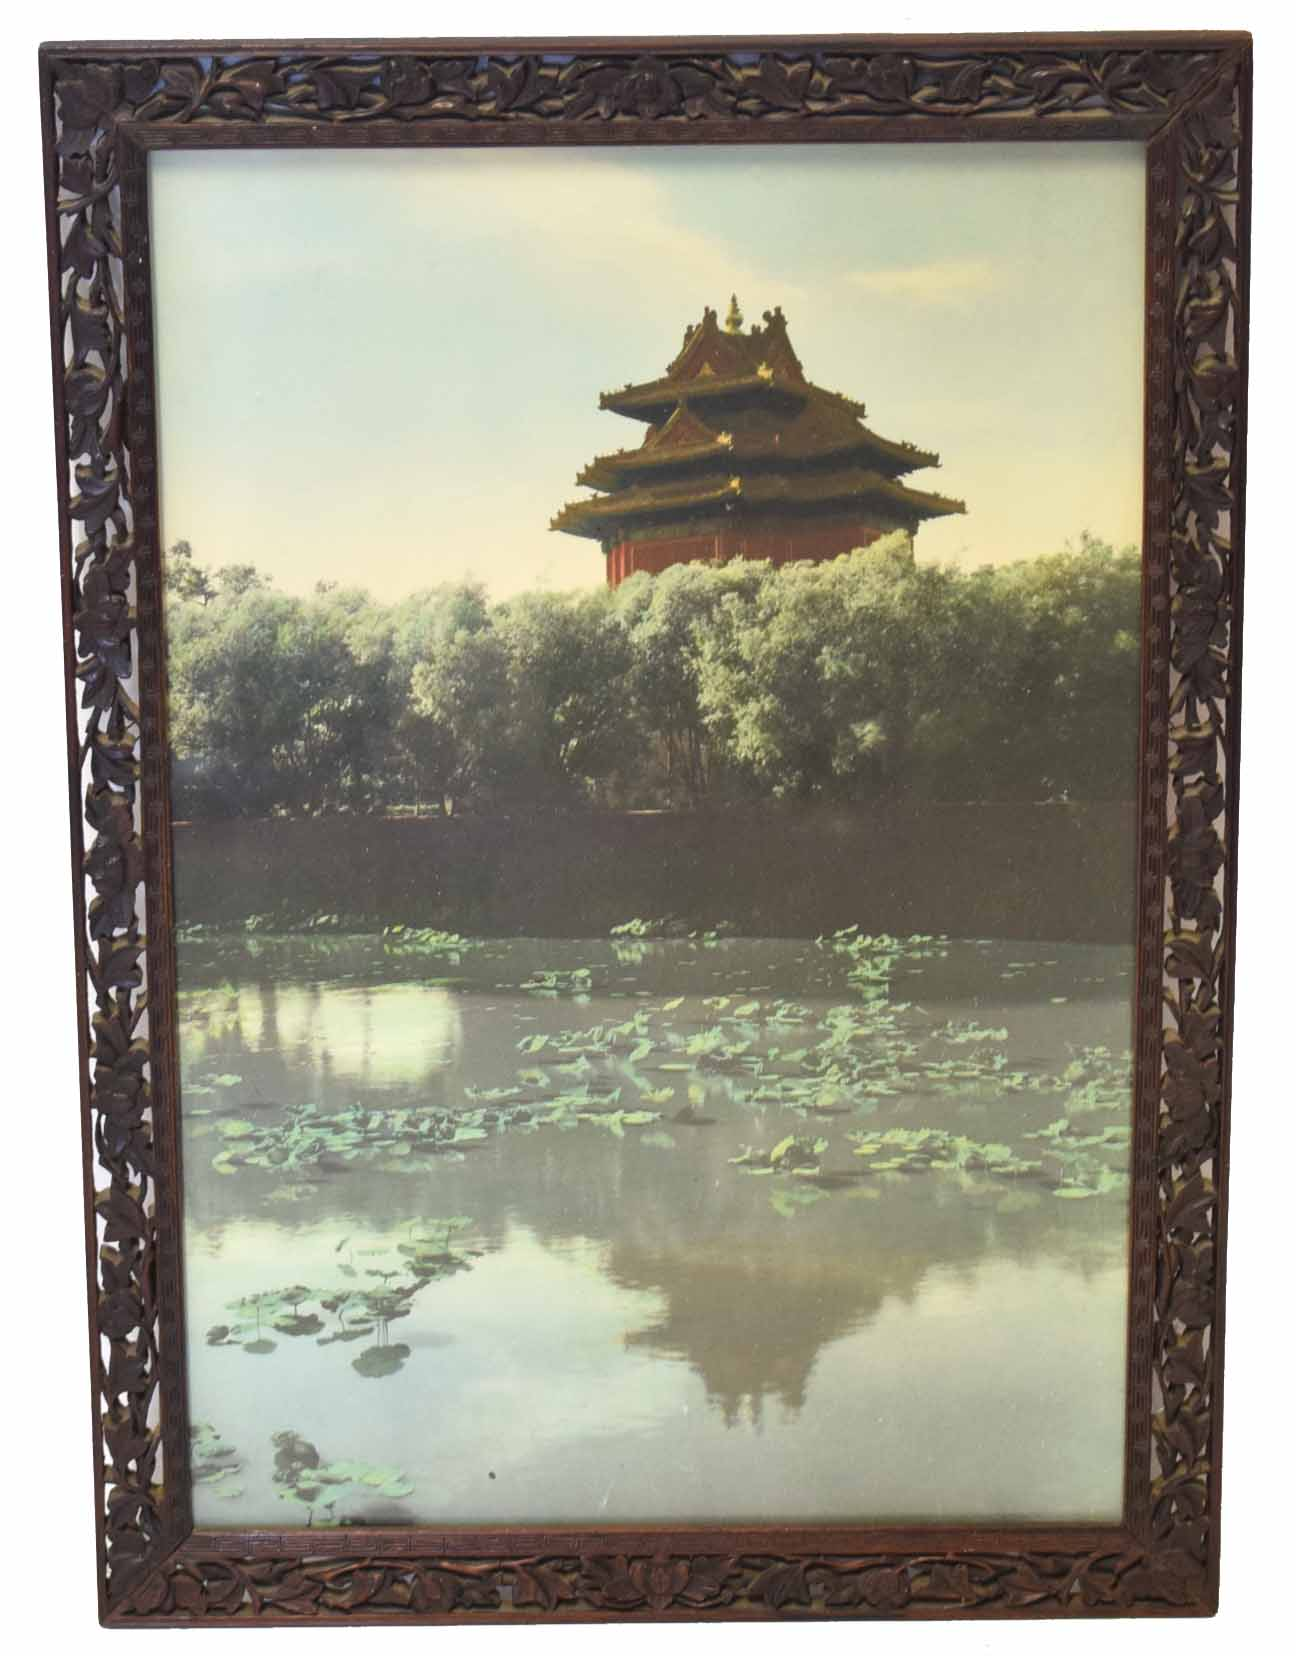 Lot 50 - Oriental print of a temple in carved wooden frame